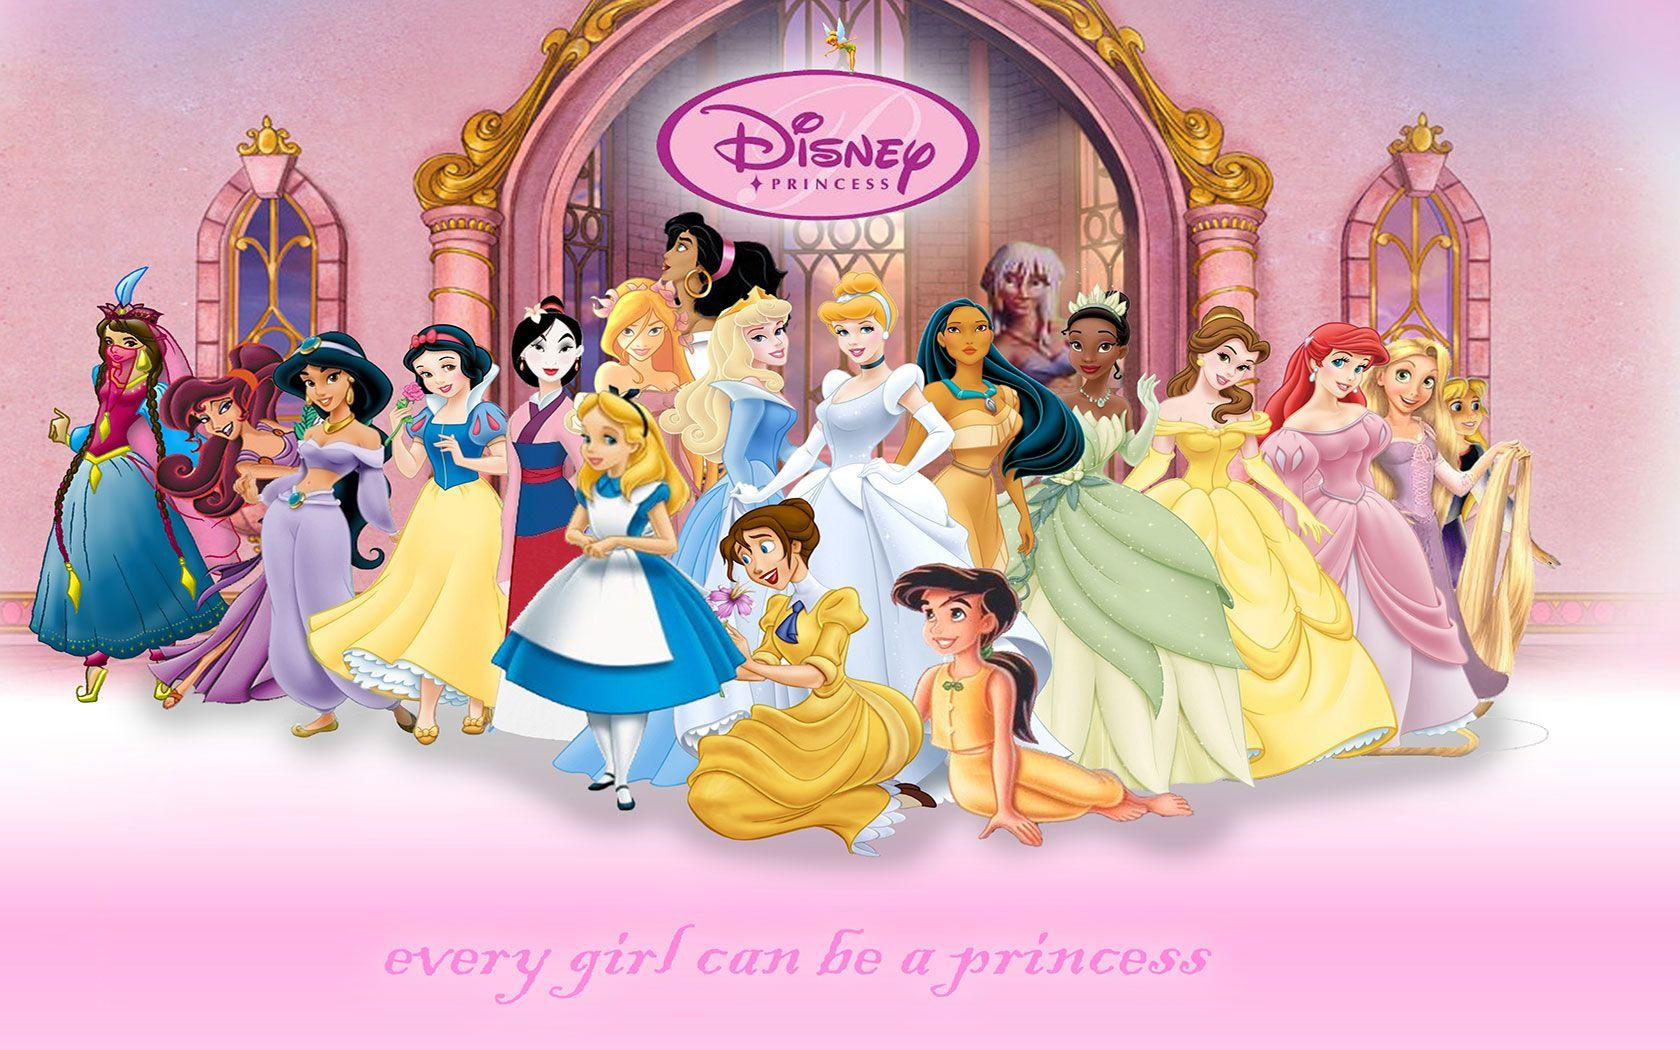 Disney Princess Hd Wallpapers Wallpaper Cave